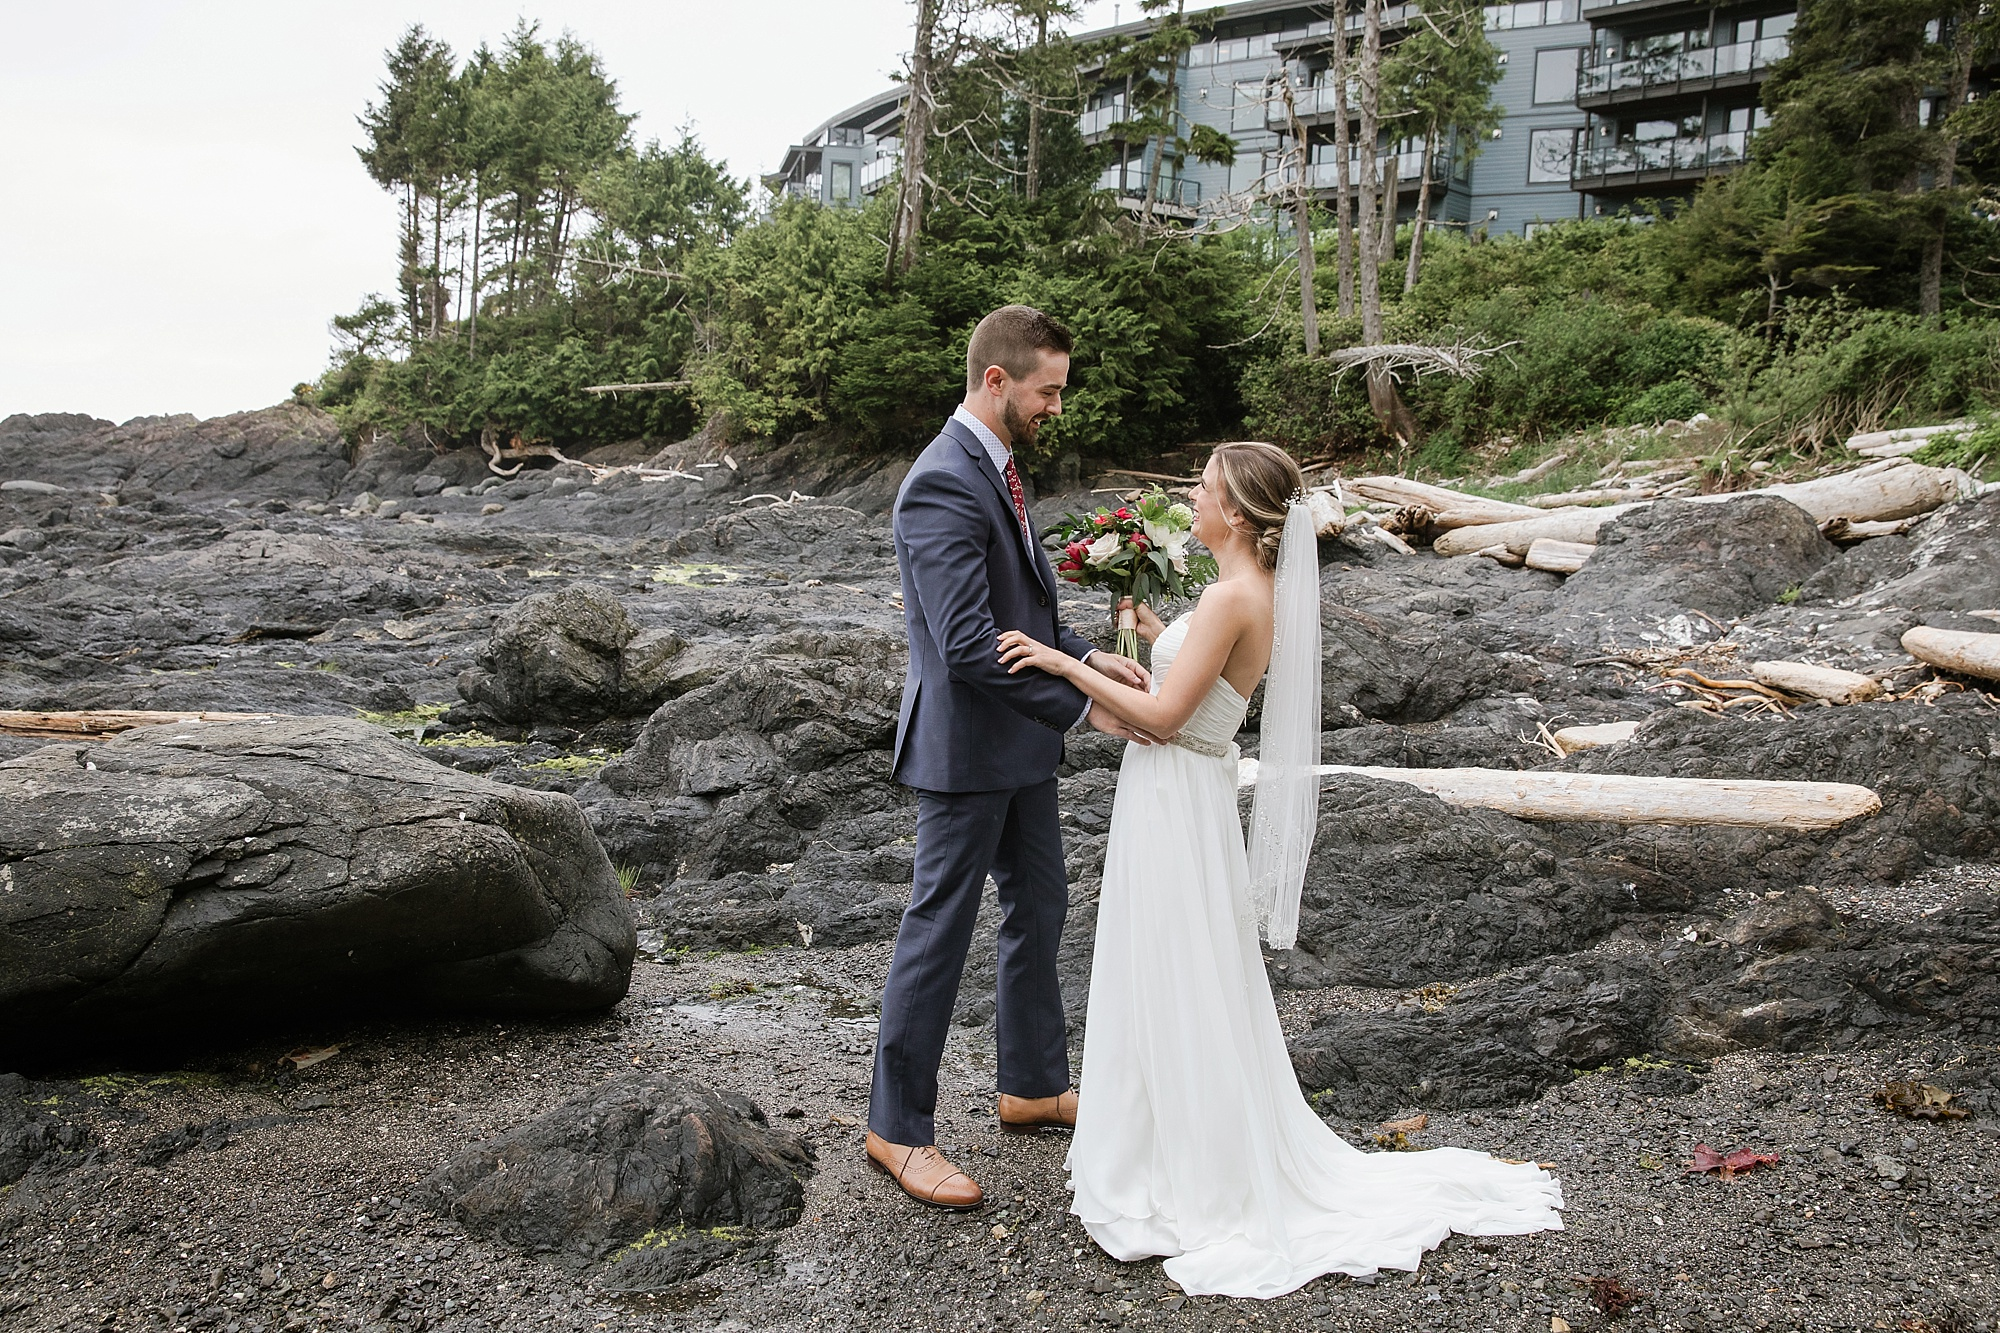 blackrockoceanfrontresort-wedding_0038.jpg